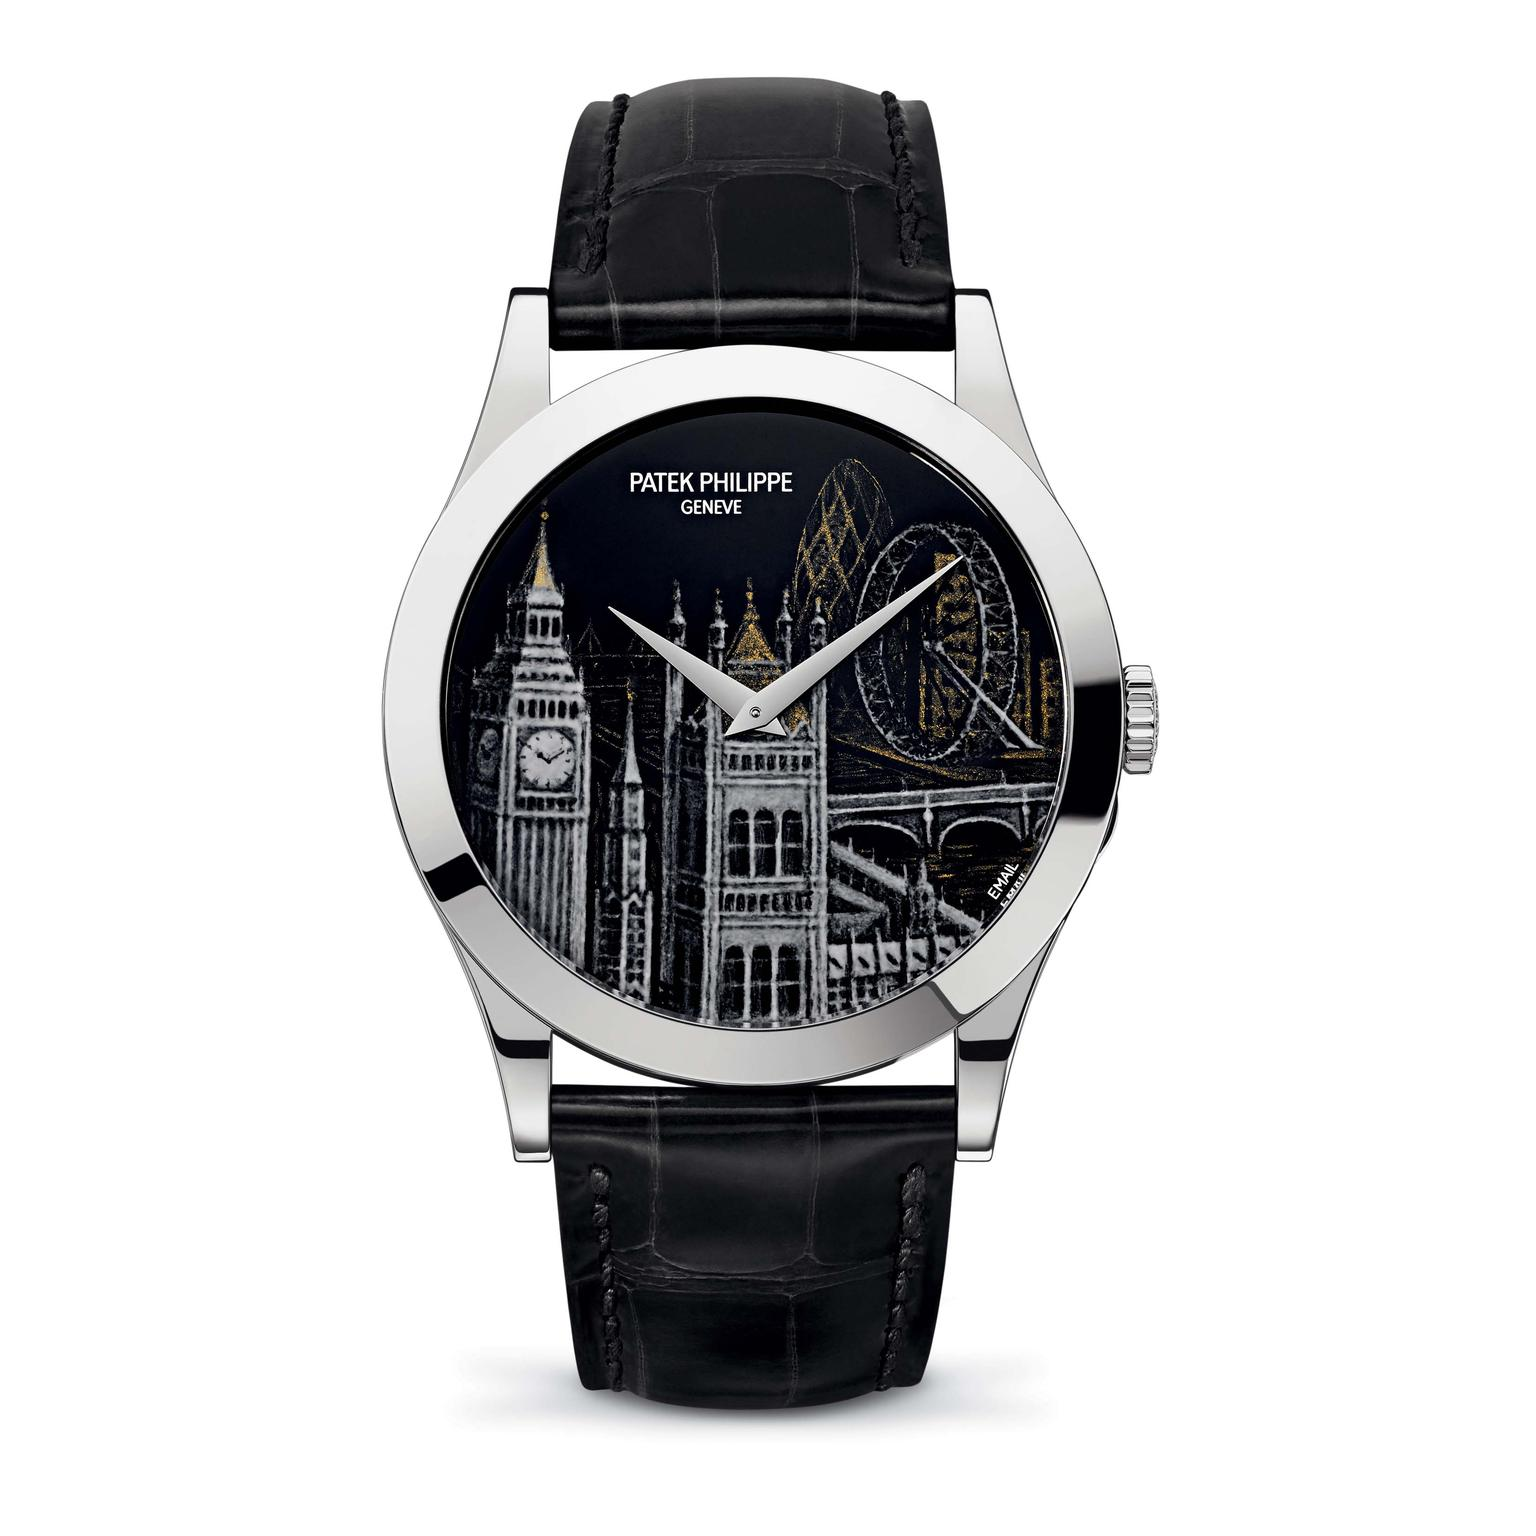 Patek Philippe Grand Exhibition London Patek Calatrava Ref. 5089G